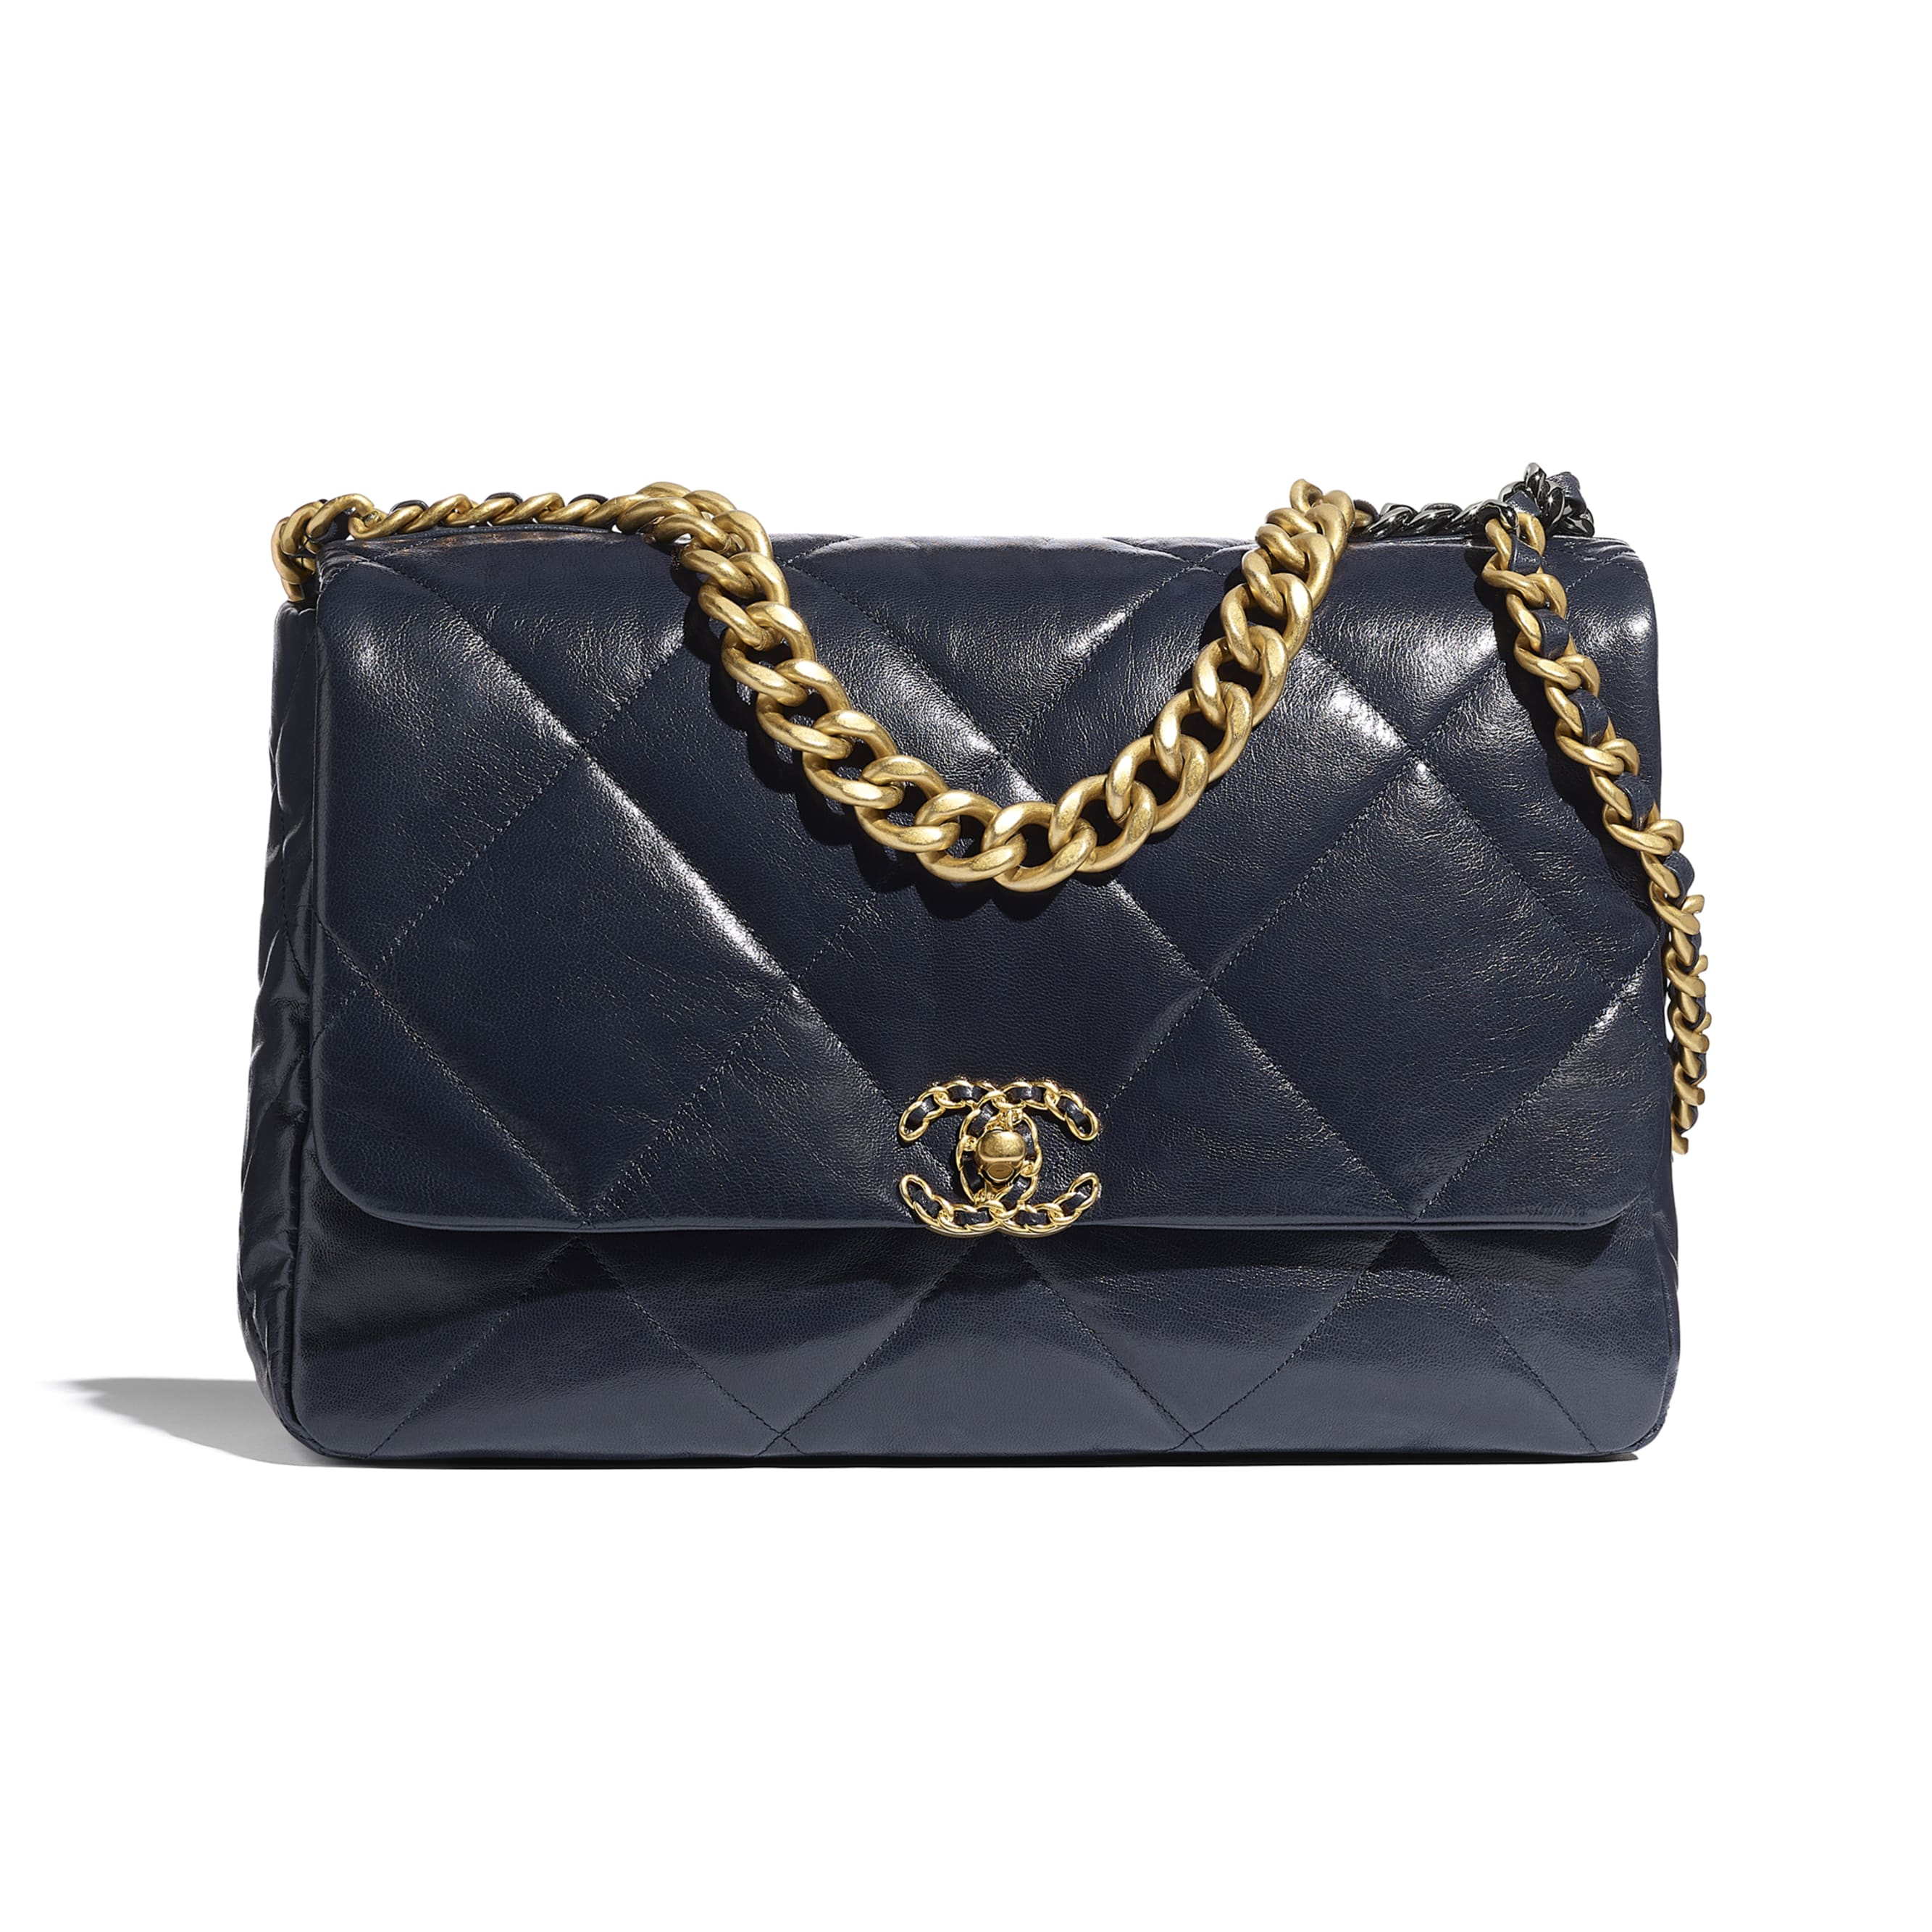 CHANEL 19 Maxi Flap Bag - Navy Blue - Goatskin, Gold-Tone, Silver-Tone & Ruthenium-Finish Metal - CHANEL - Default view - see standard sized version